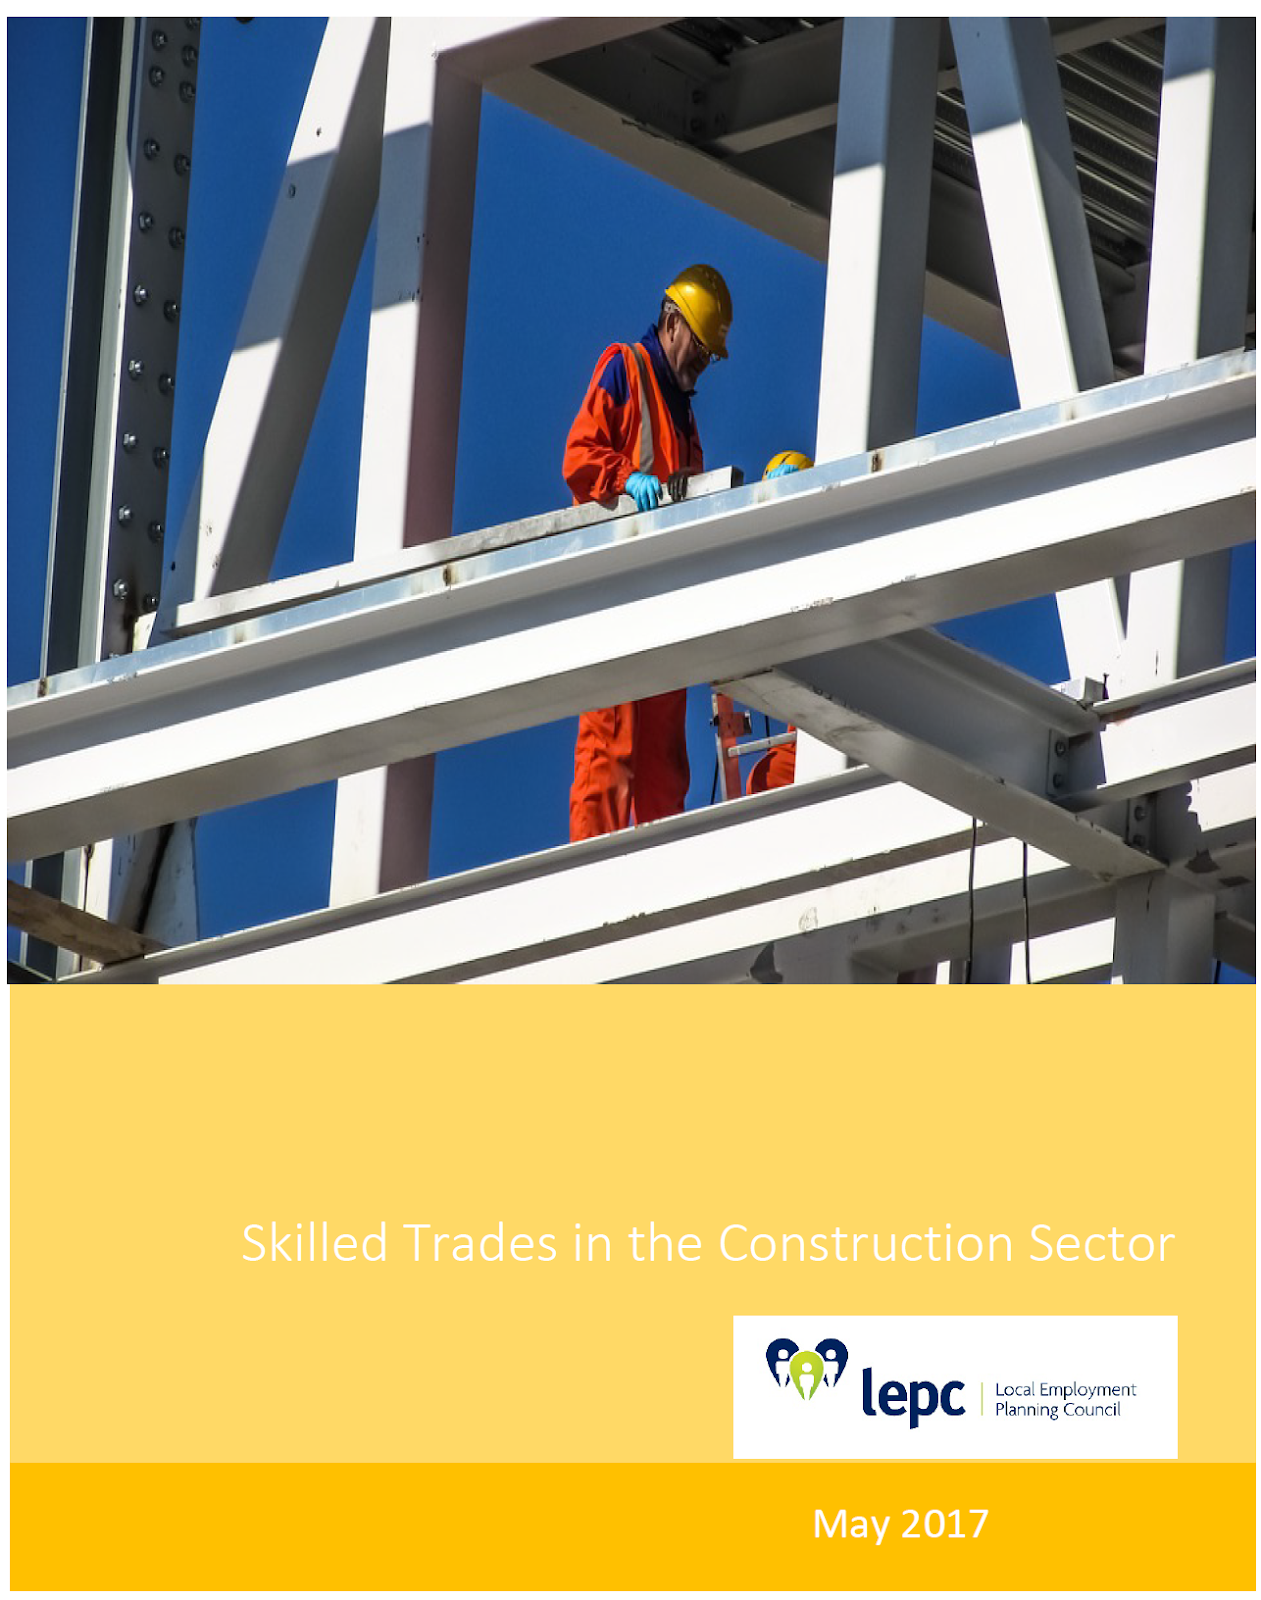 Skilled Trades in the Construction Sector